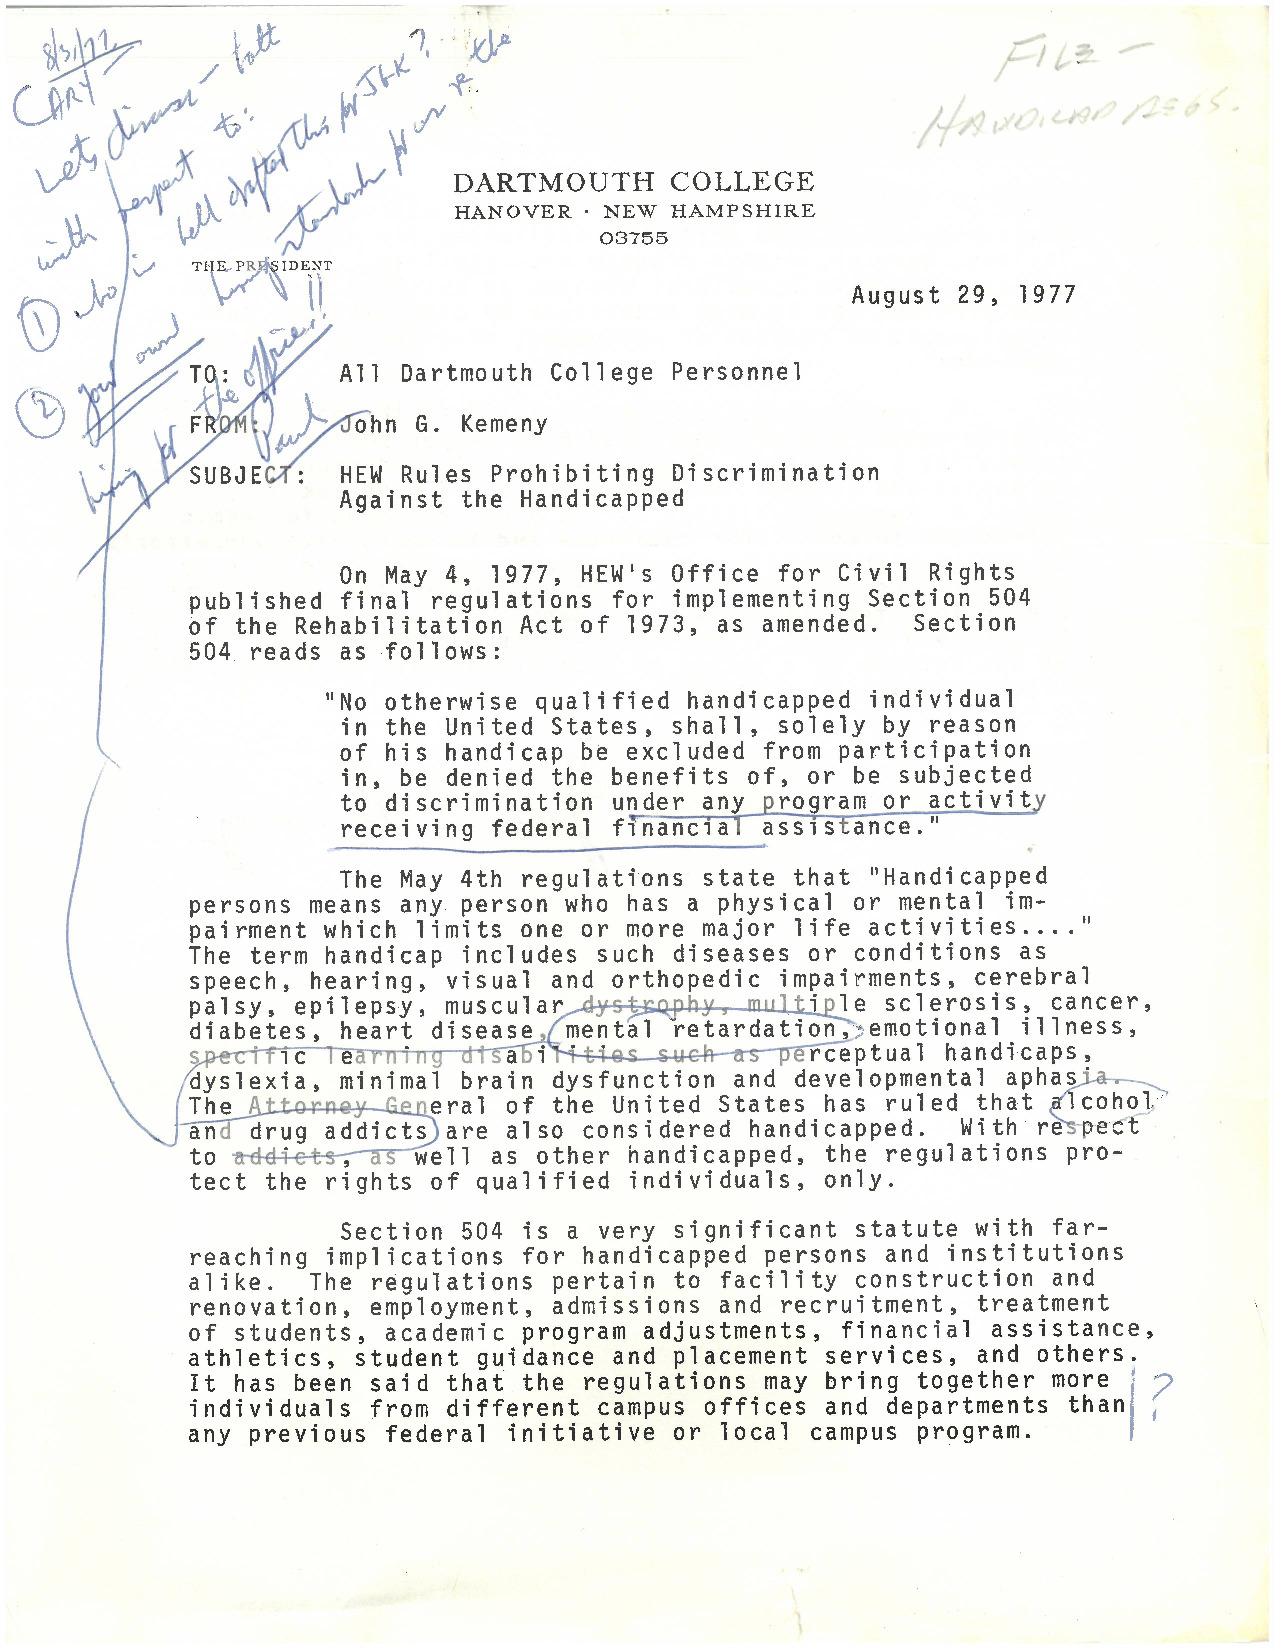 """President John G. Kemeny writes to all members of the College to reiterate the College's now official outlook on the Health, Education, and Welfare (HEW) regulations, a strong departure from the statement in a more private memo from August 30, 1976. Kemeny asserts that """"It is not necessary to make structural changes in existing facilities when programs can be made accessible by other methods such as reassignment of classes or assignment of aides to handicapped individuals..."""" This letter, like many other documents that seek to sidestep equal access to all campus facilities, cites the age of the institution as the fundamental barrier to full compliance with HEW regulations."""